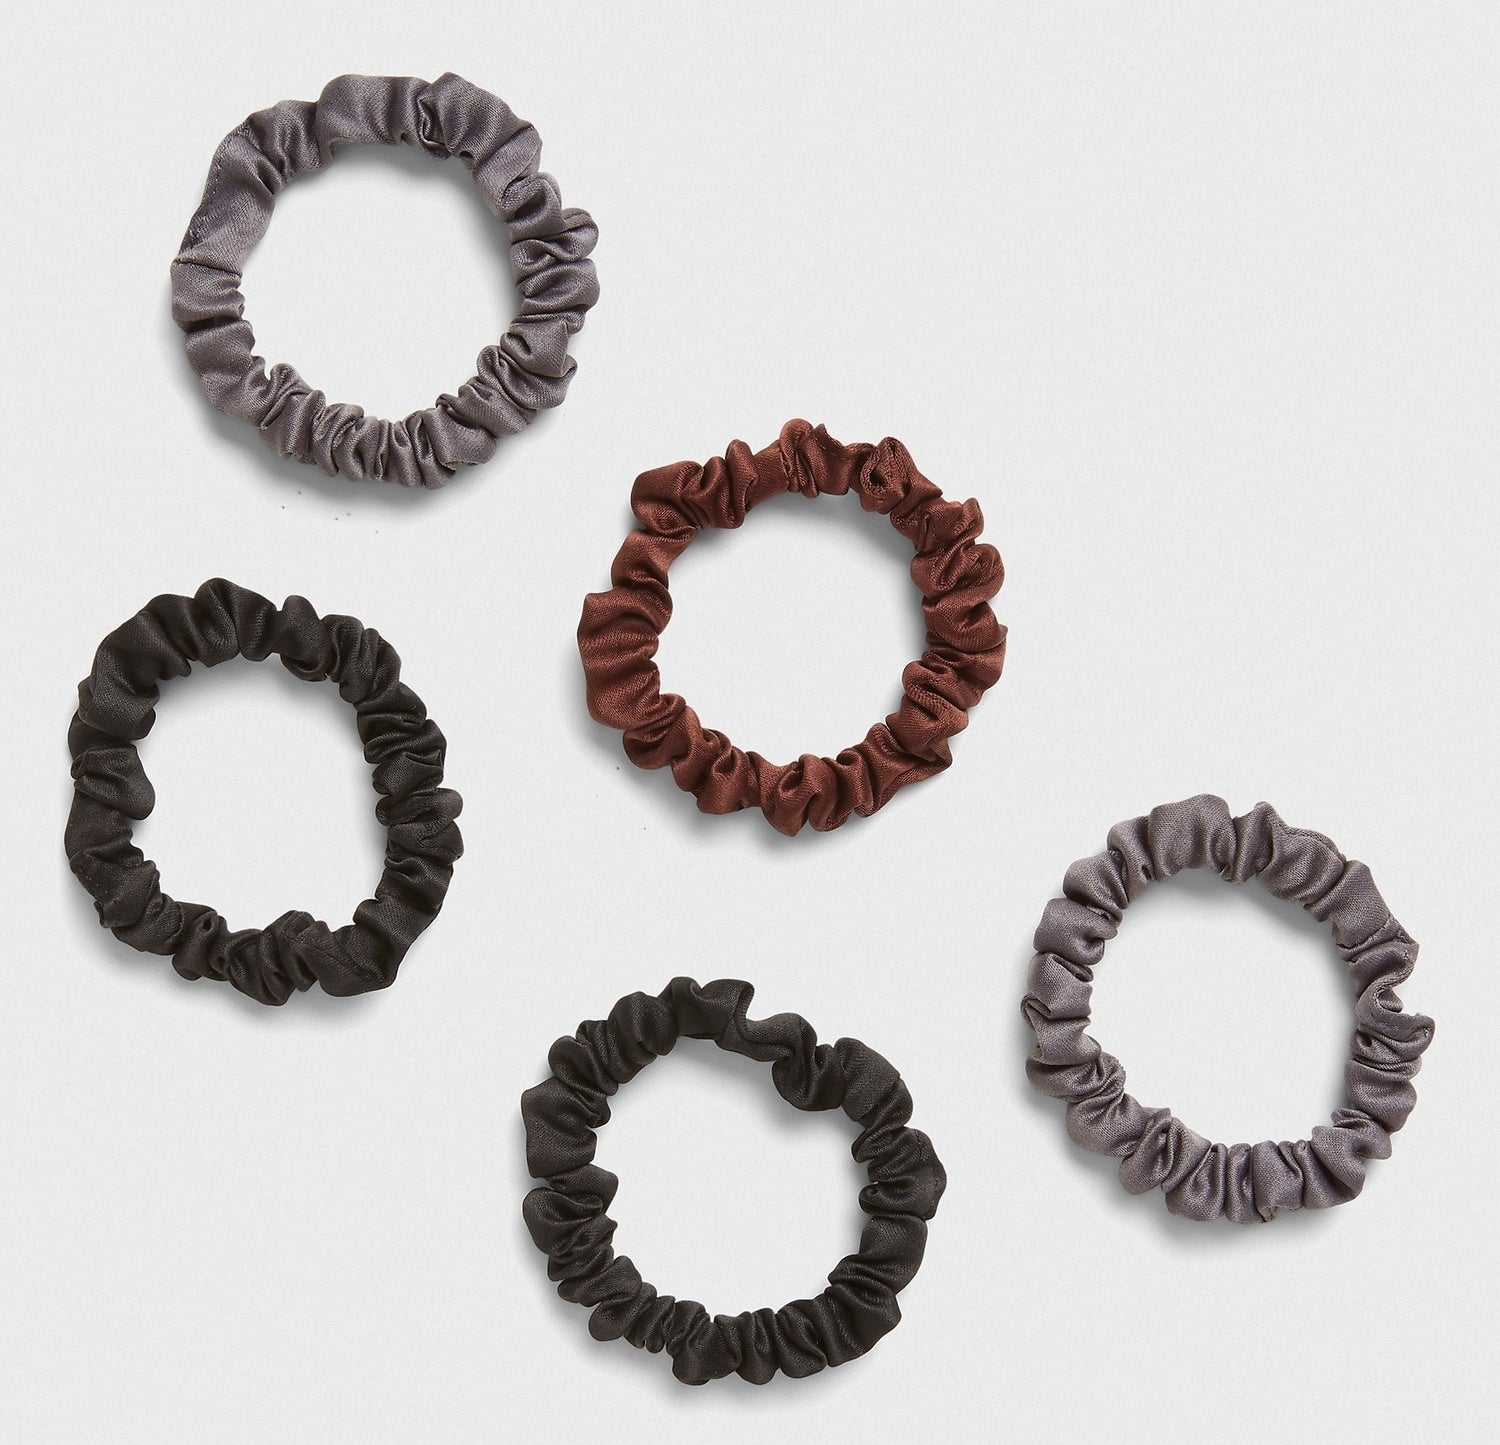 The scrunchies in greys, black, and brown